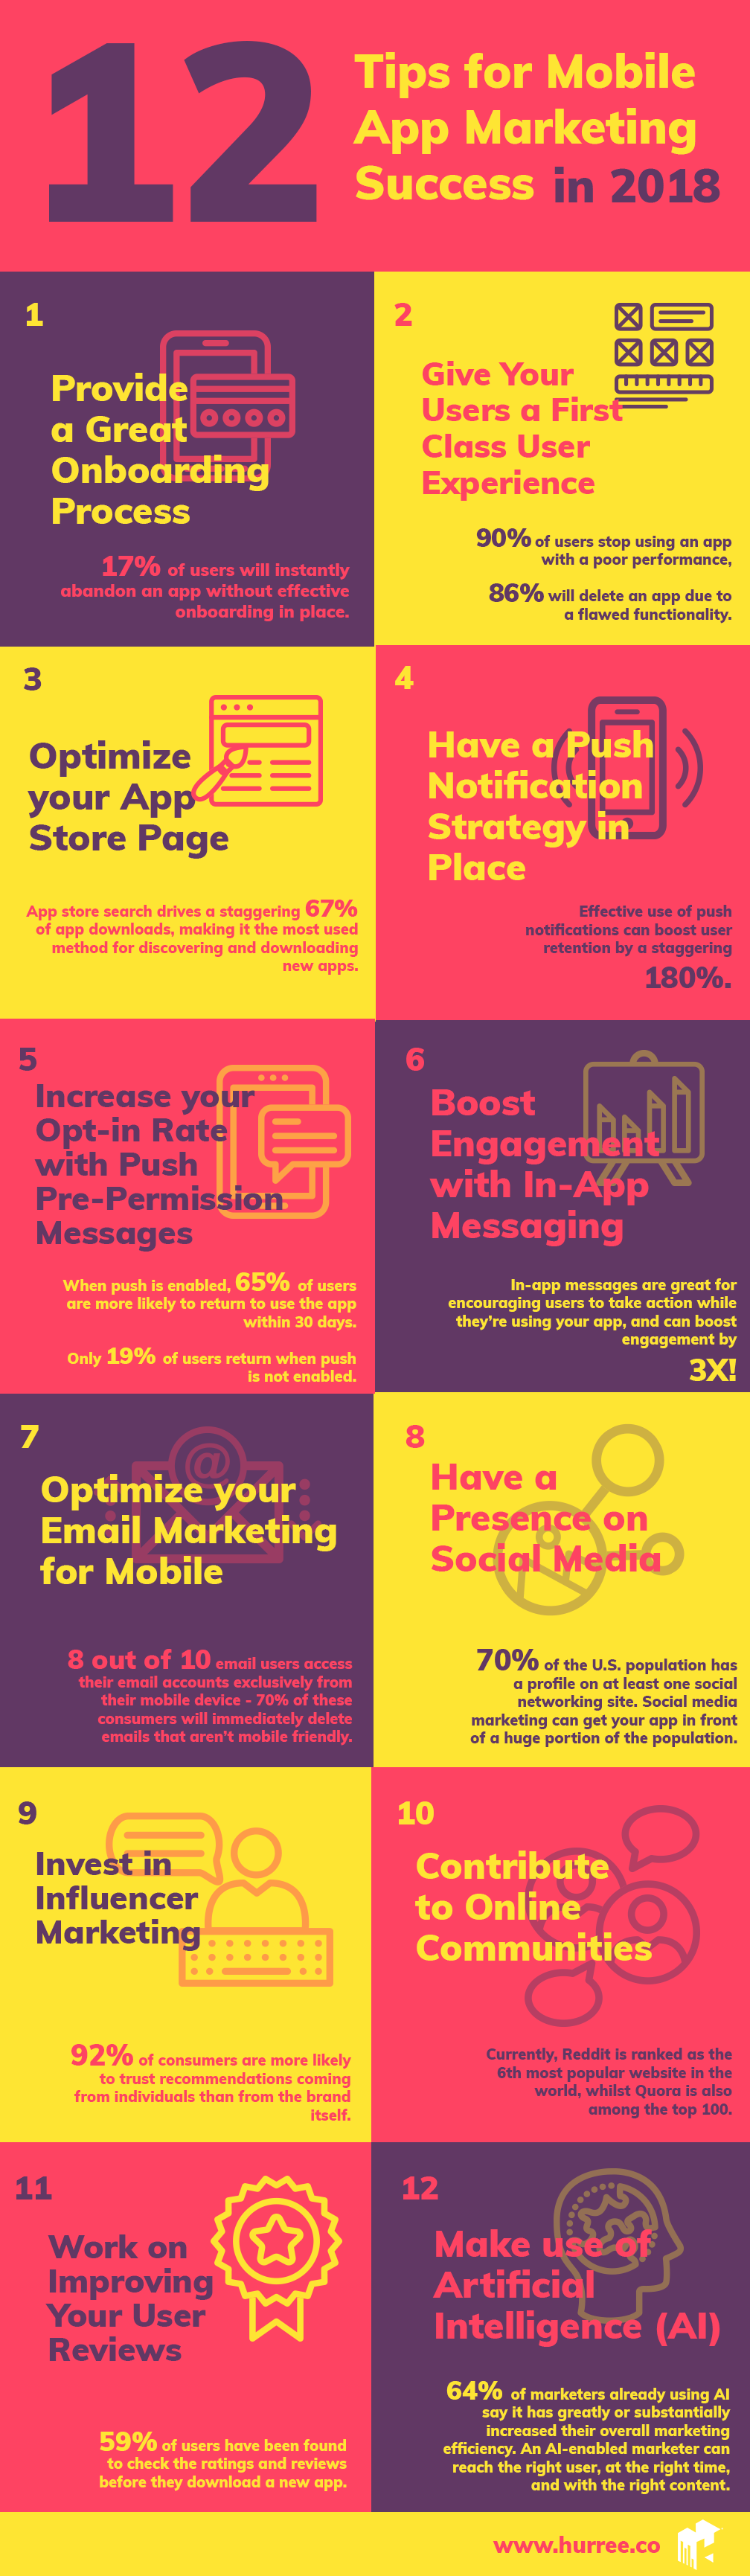 12-Mobile-Marketing-Tips-2018-Infographic